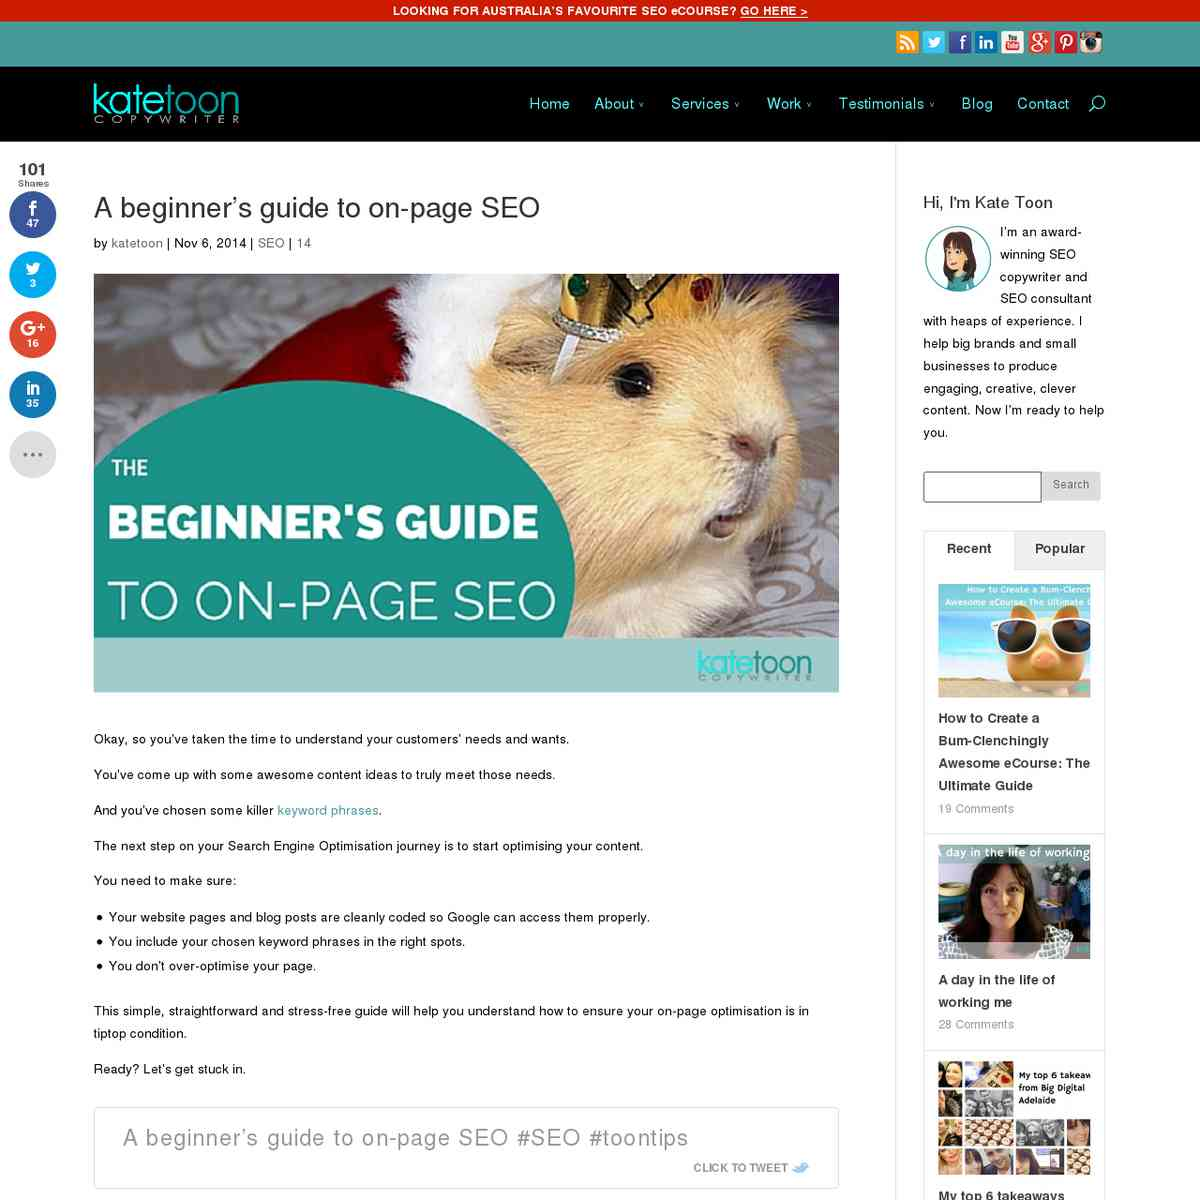 A beginners guide to on page SEO